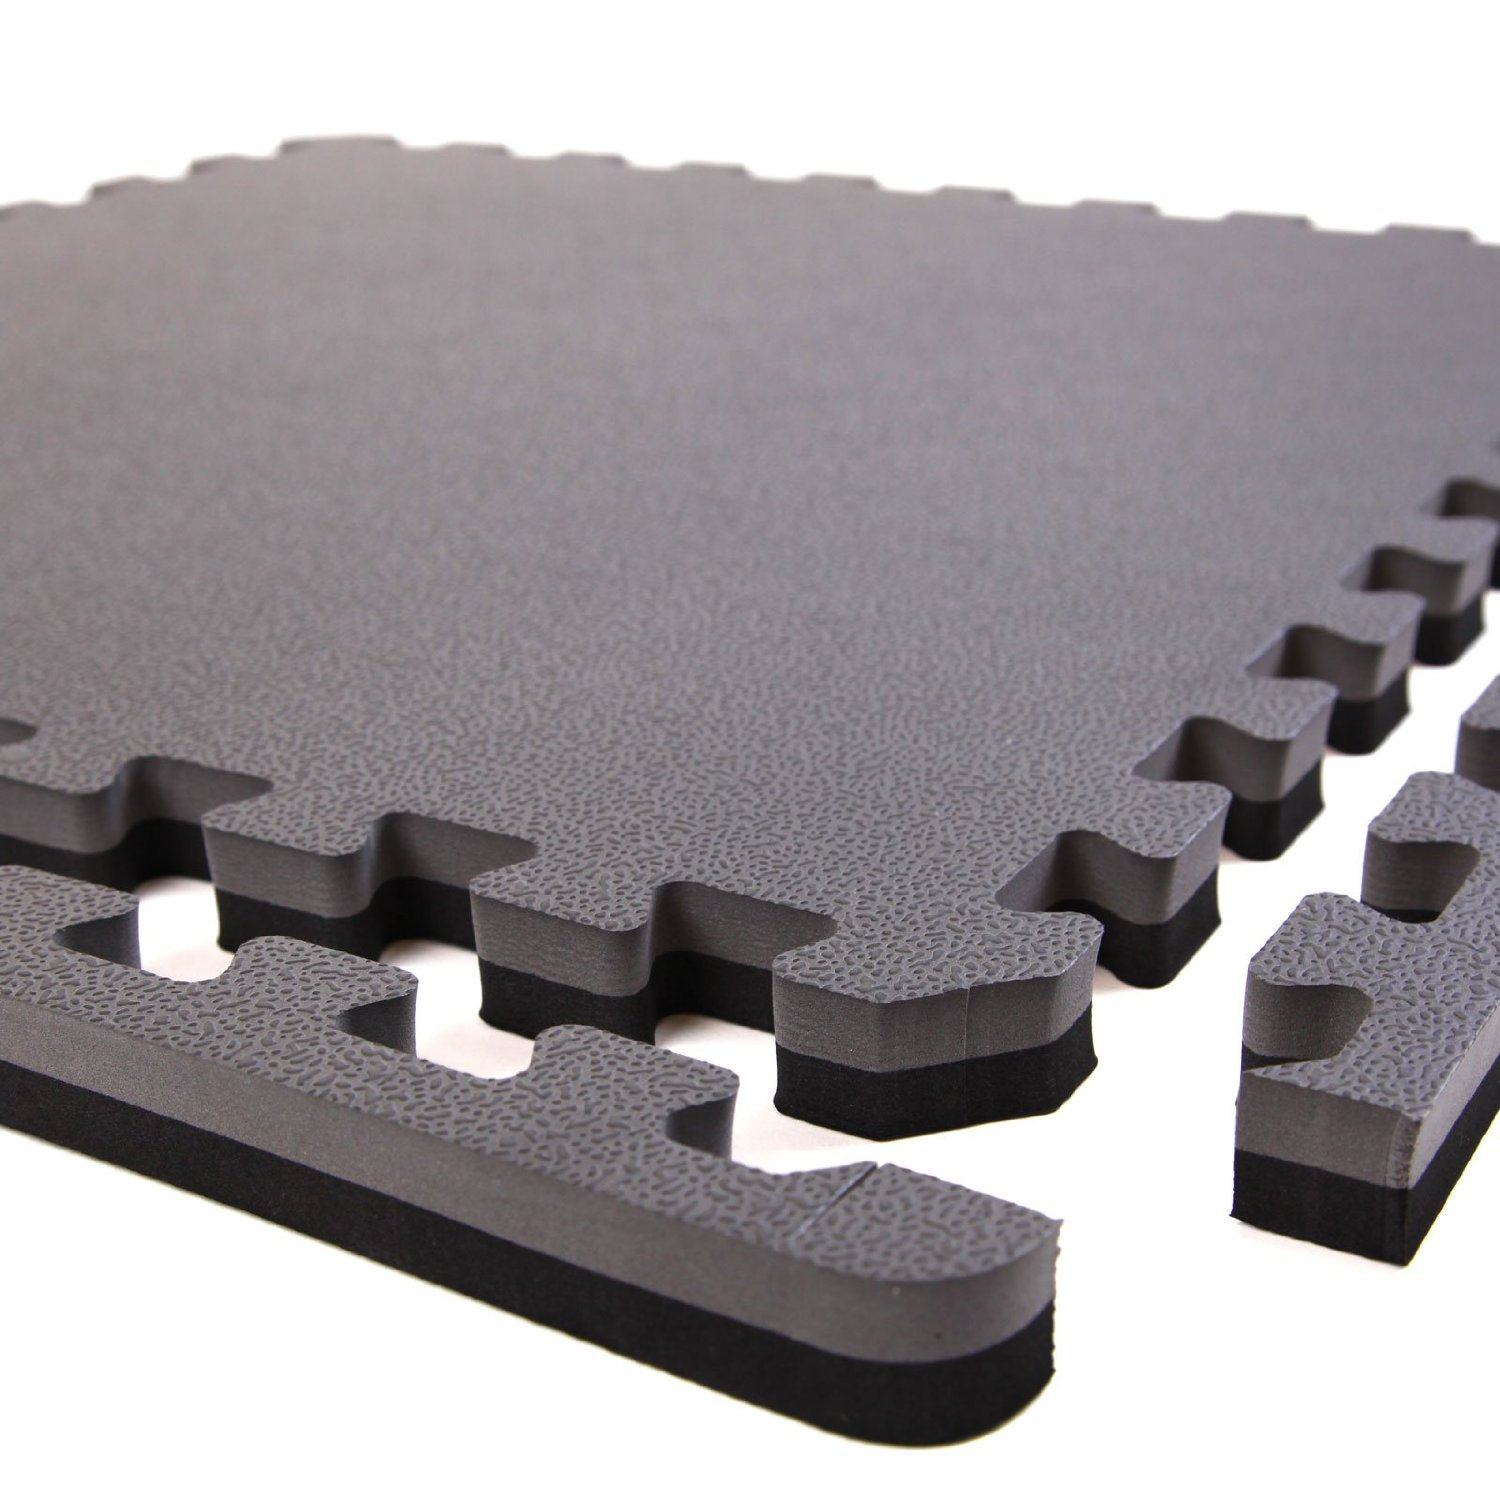 IncStores - 1'' MMA Interlocking Foam Tiles (Black/Grey, 6 Tiles (2ft x 2ft Tiles) 24 Sqft) - Perfect for Martial Arts, Lightweight Home Gyms, p90x, Insanity, Gymnastics, Yoga, Cardio and Aerobics by IncStores (Image #2)